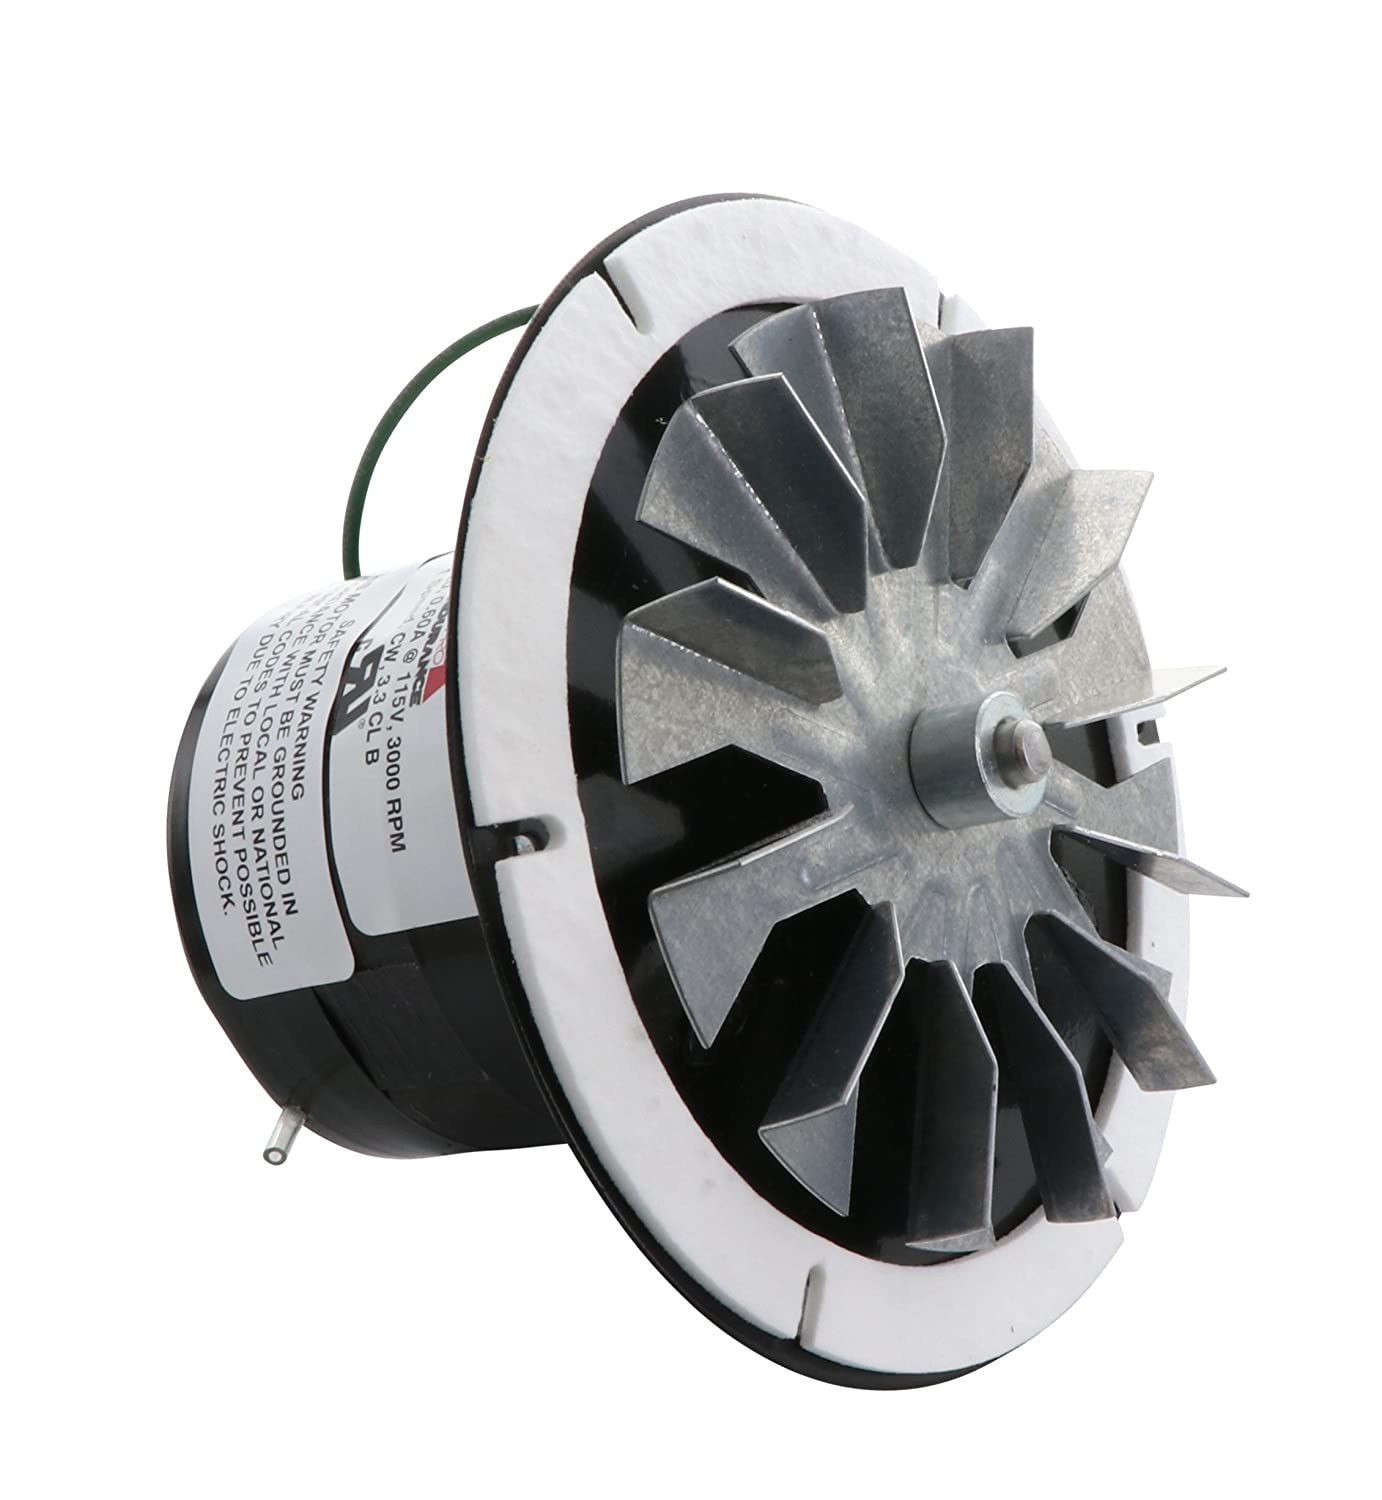 Rotom Hb Rbm120 Pellet Stove Blower Motor Replacement 1 60 Hp 3000 Wood Motors On Wiring Diagram Rpm 03 Amp 115v Electric Fan